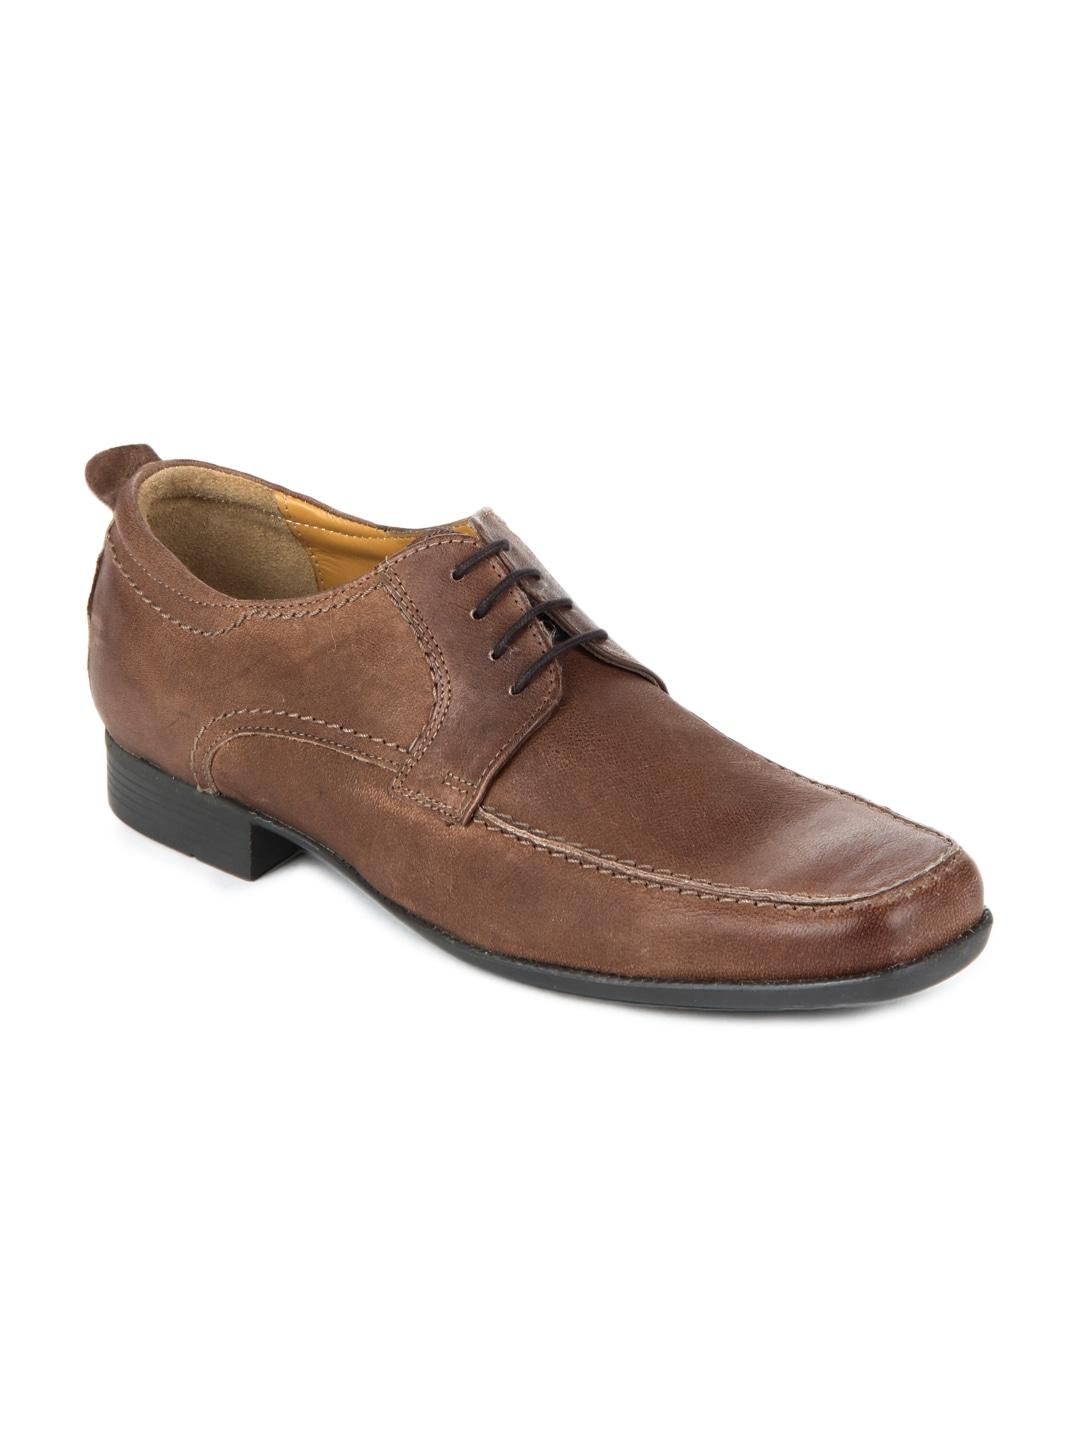 Ruosh Work Semi-Formal Men Tan Brown Leather Derby Shoes